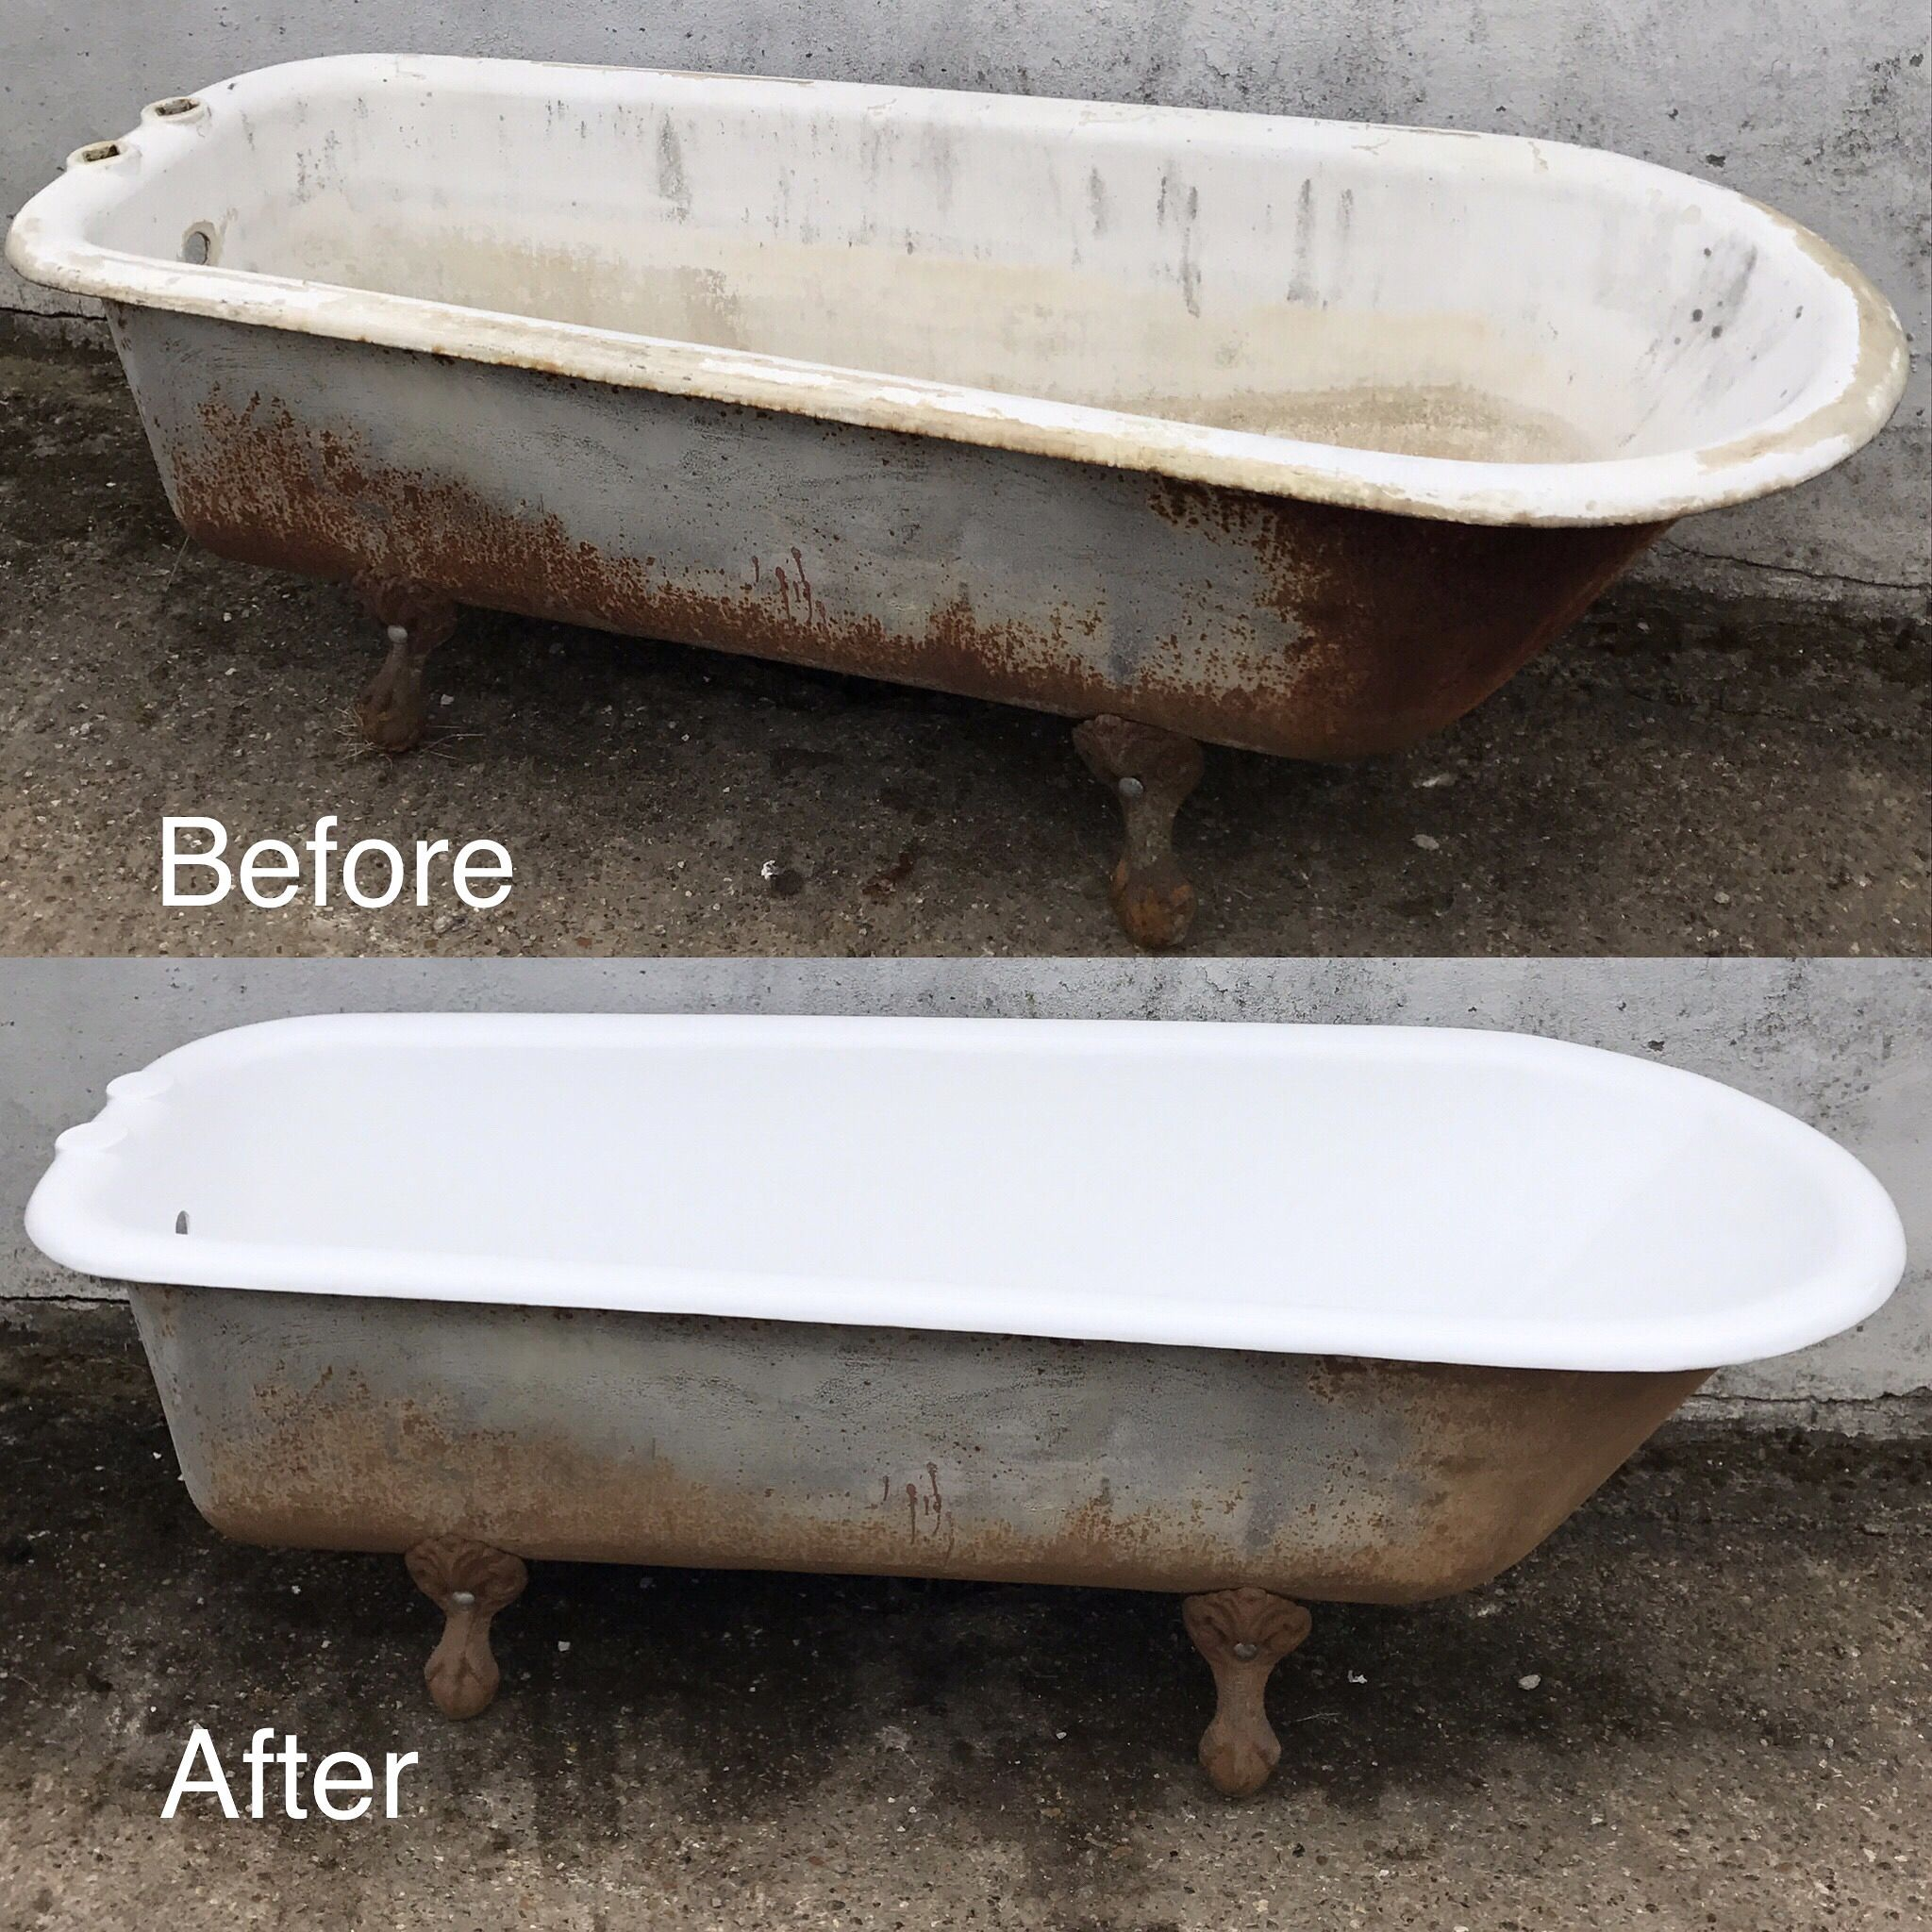 Before And After This Is A Gorgeous Example Of A Genuine 1920 S Antique Cast Iron Bathtub Chosen From Cast Iron Tub Refinish Cast Iron Bathtub Cast Iron Bath